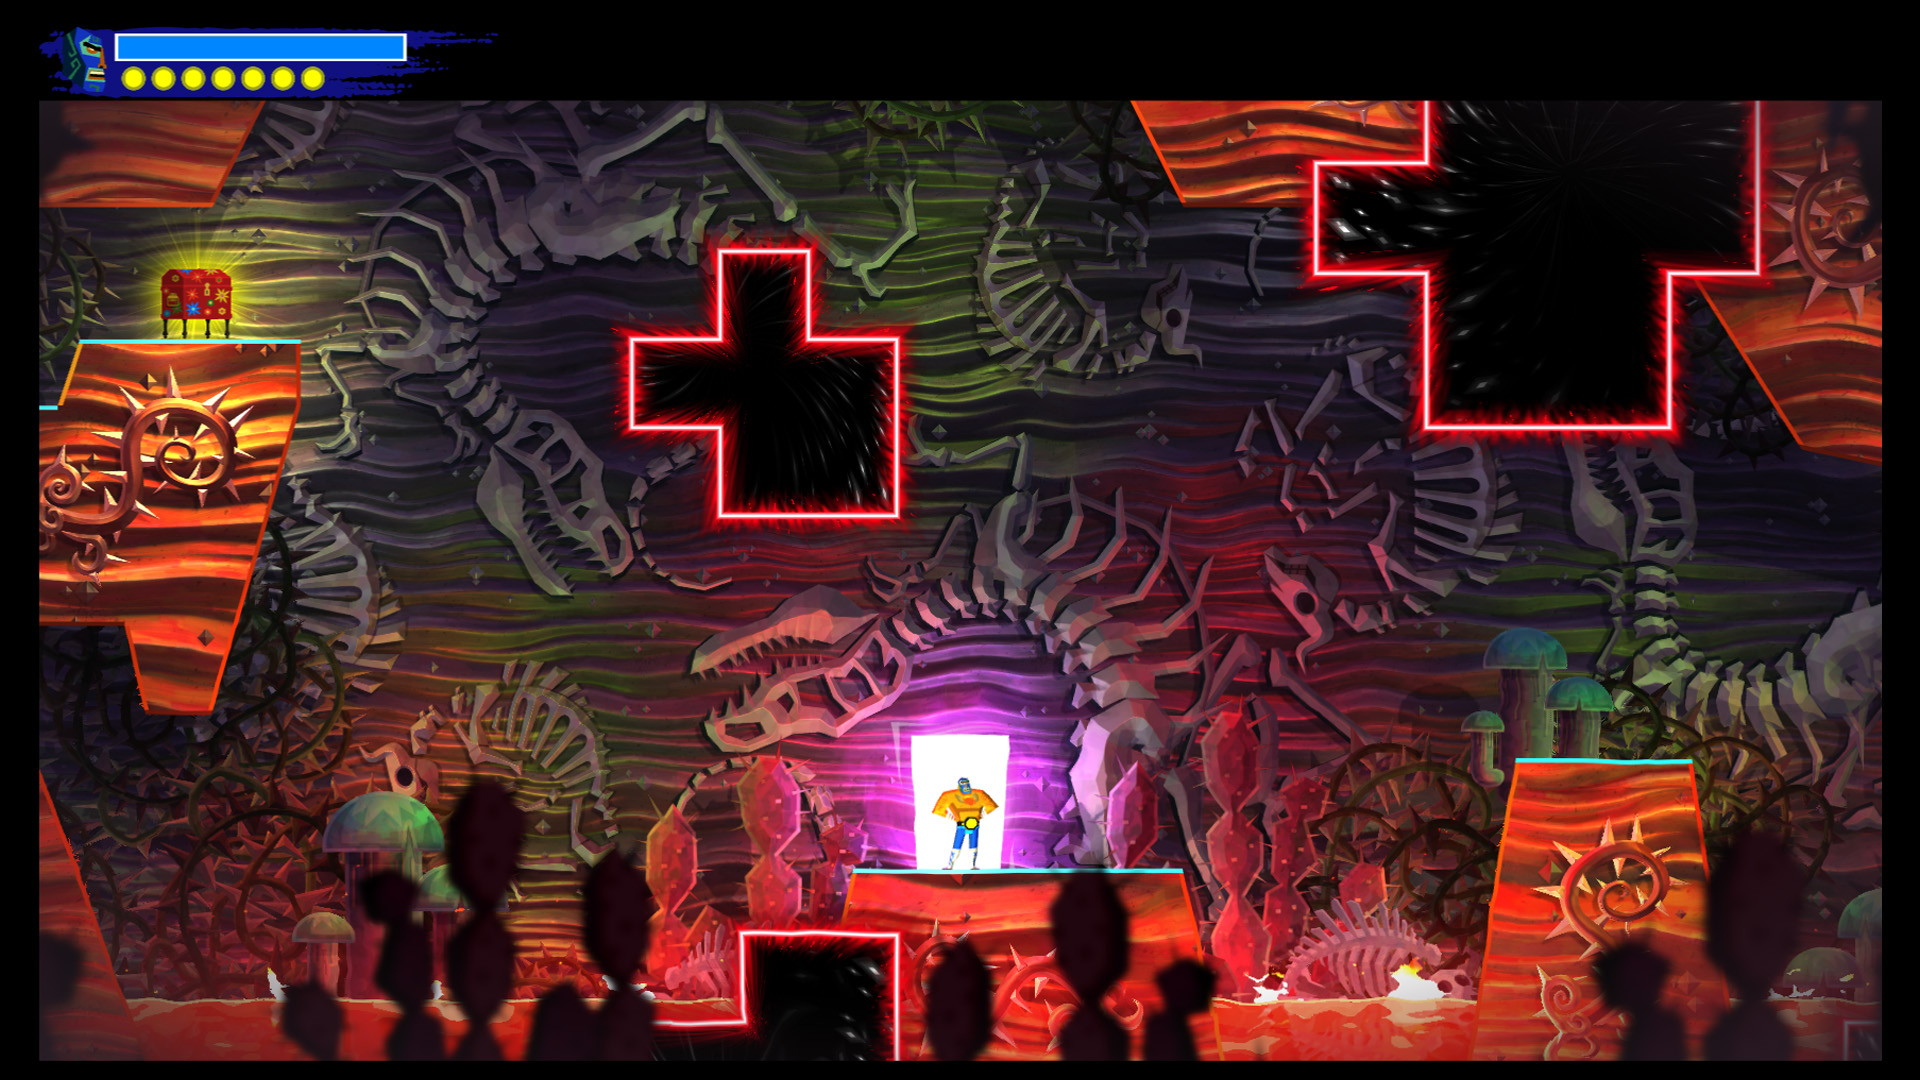 Guacamelee! 2 - screenshot 4